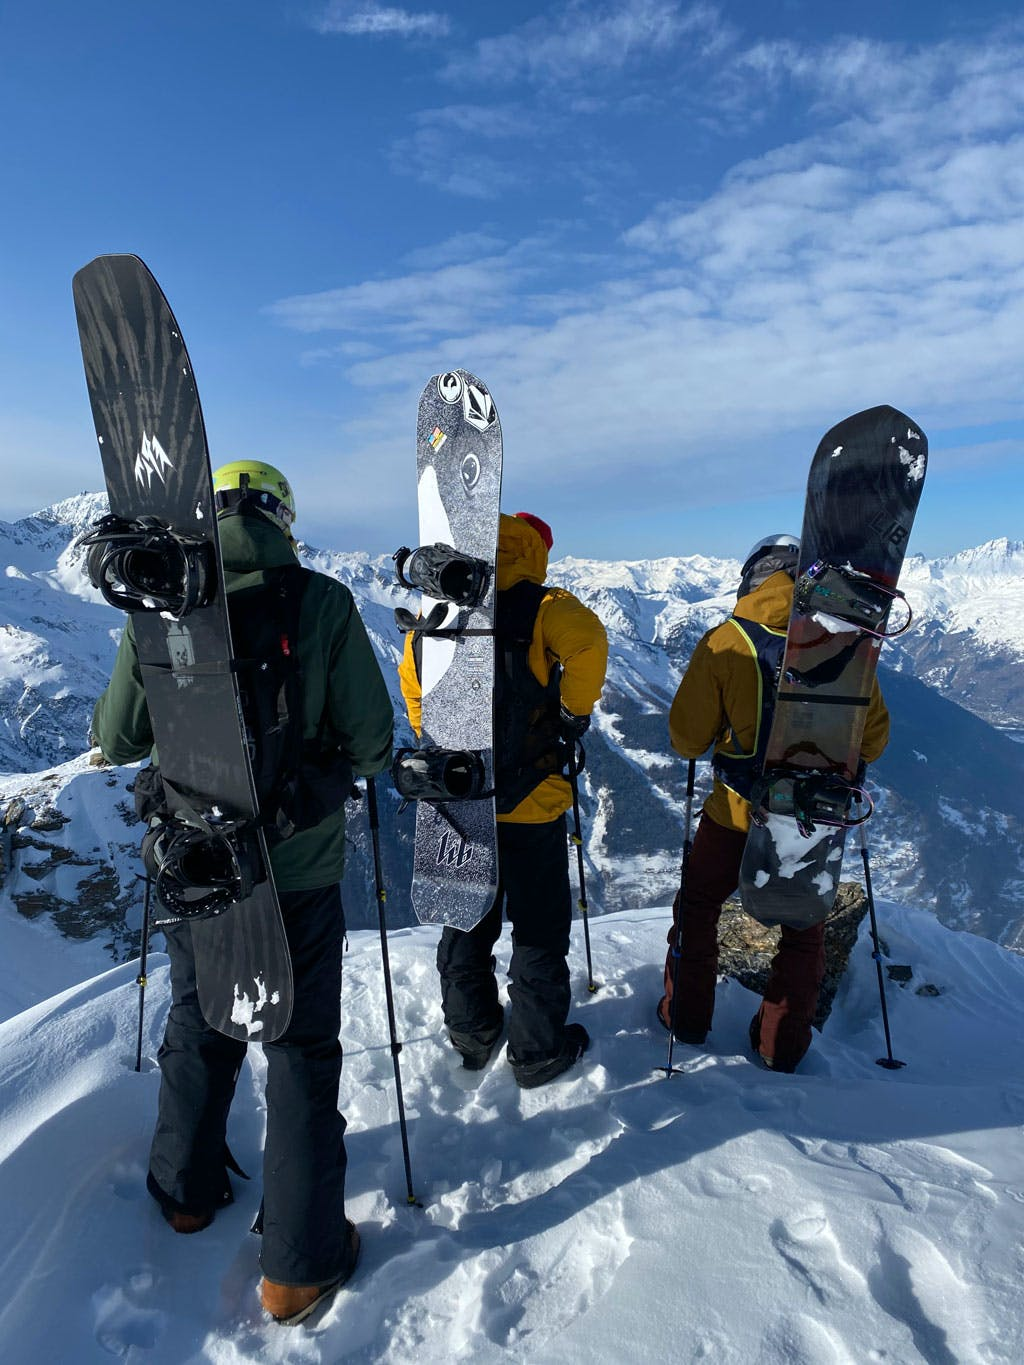 Backcountry Freeride snowboarders scoping lines